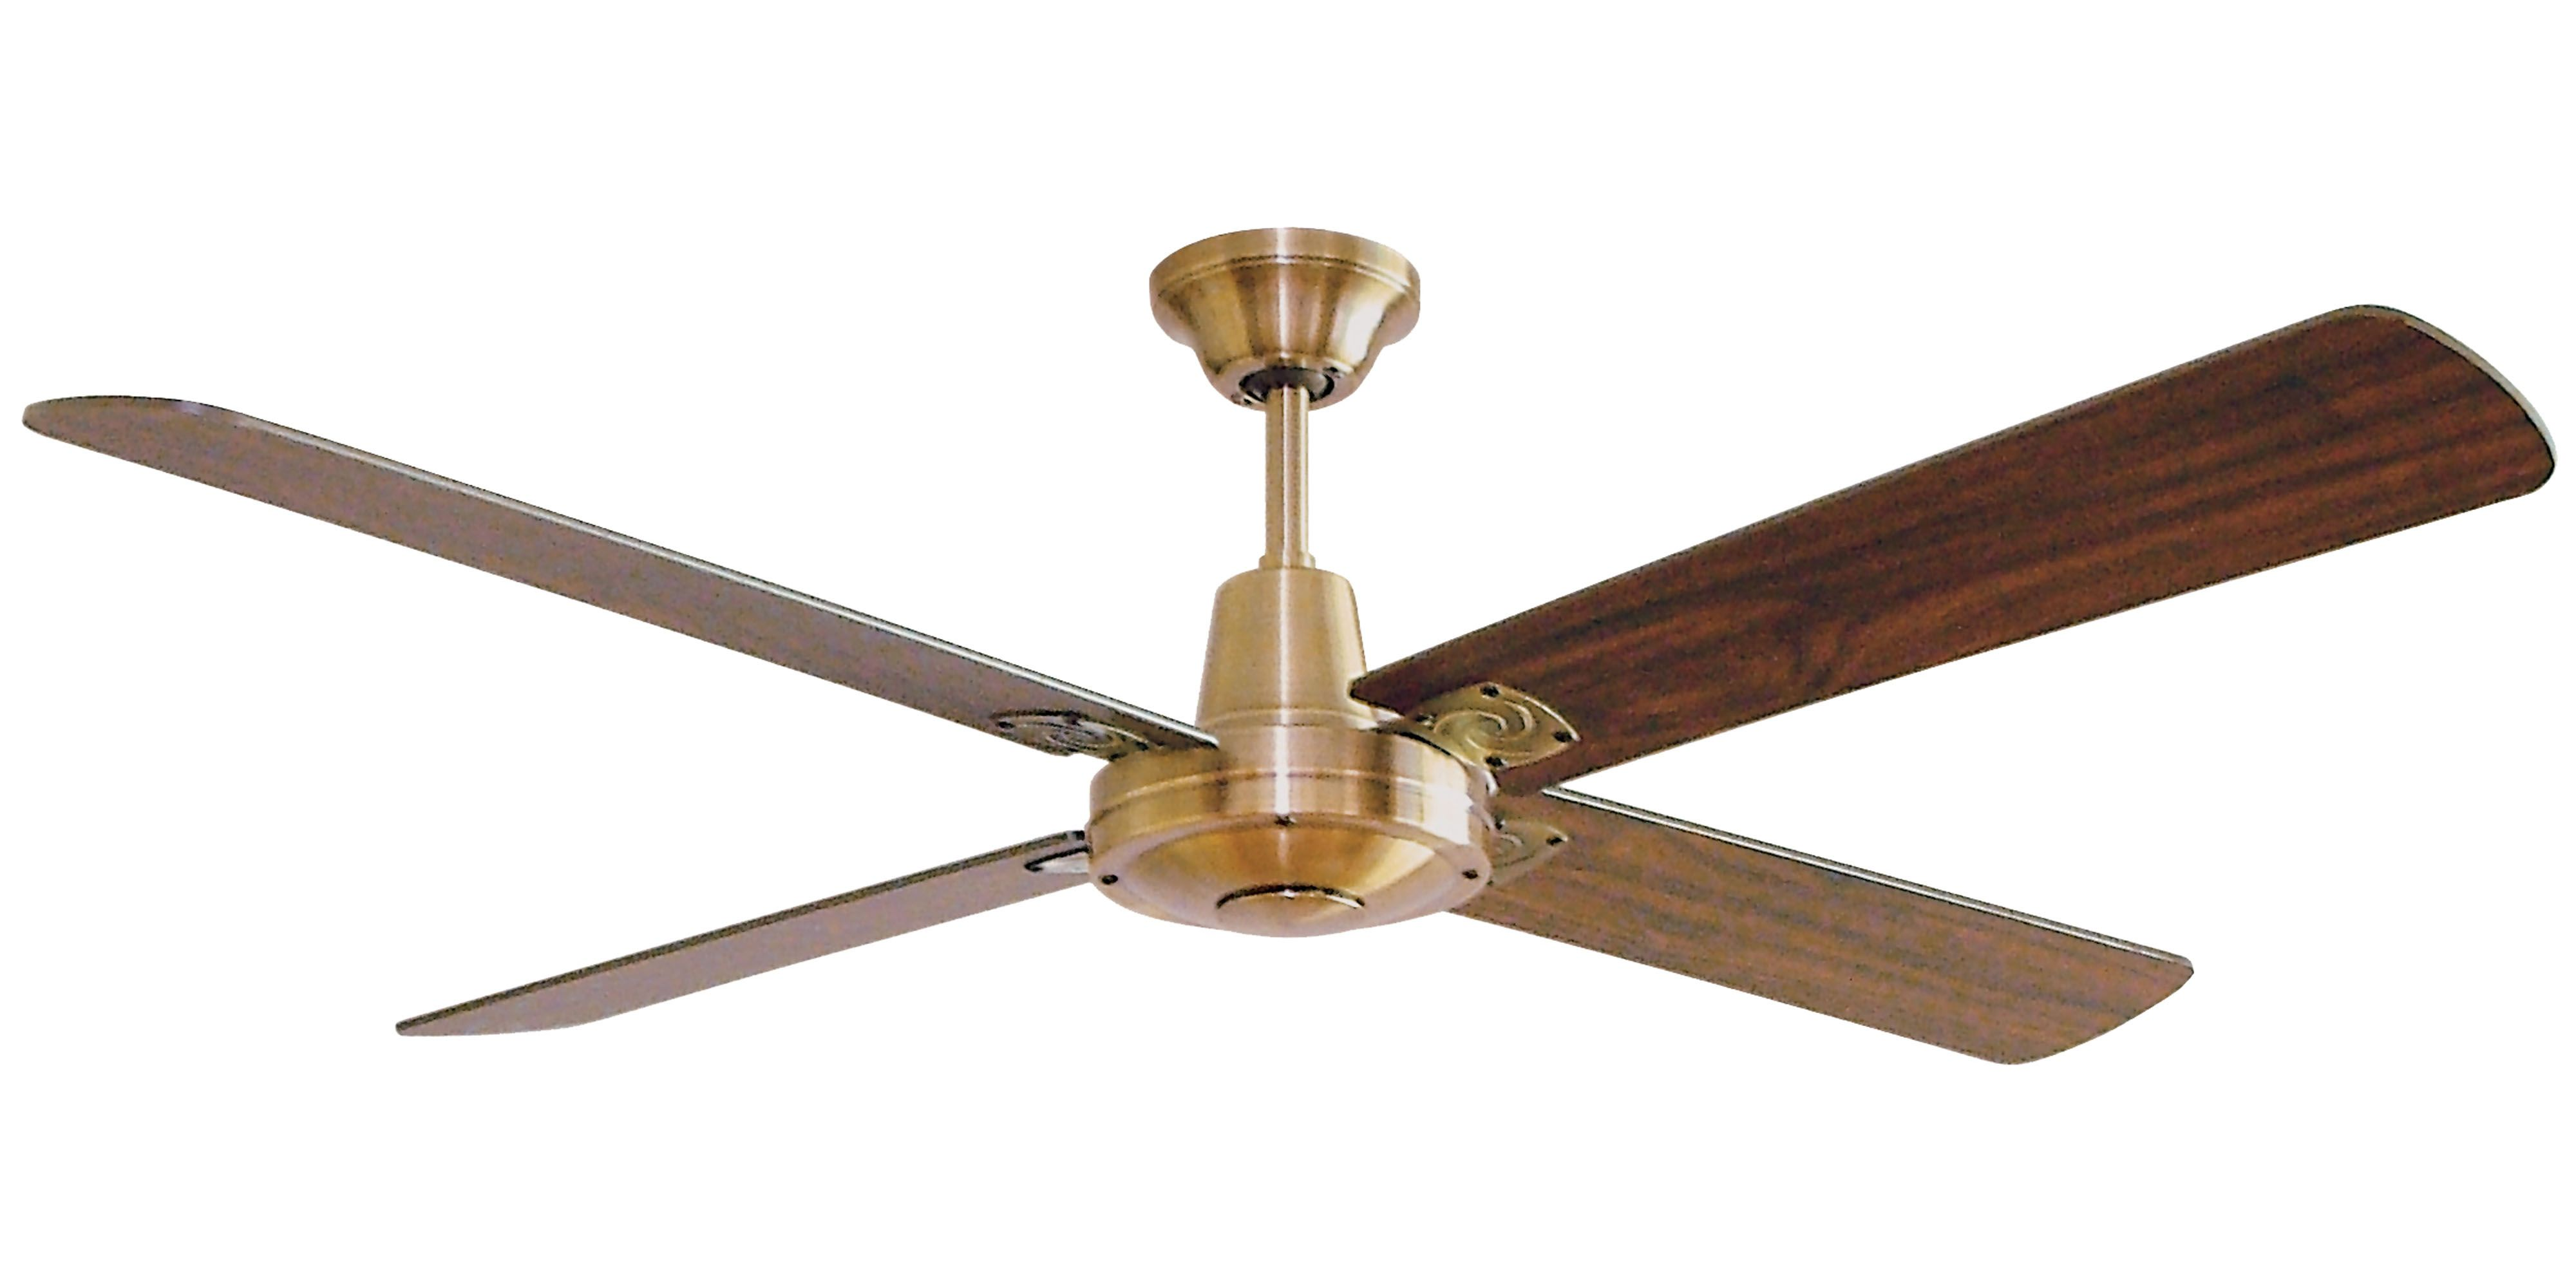 """The Typhoon Timber 1320mm 52"""" ceiling fan range is a quality"""